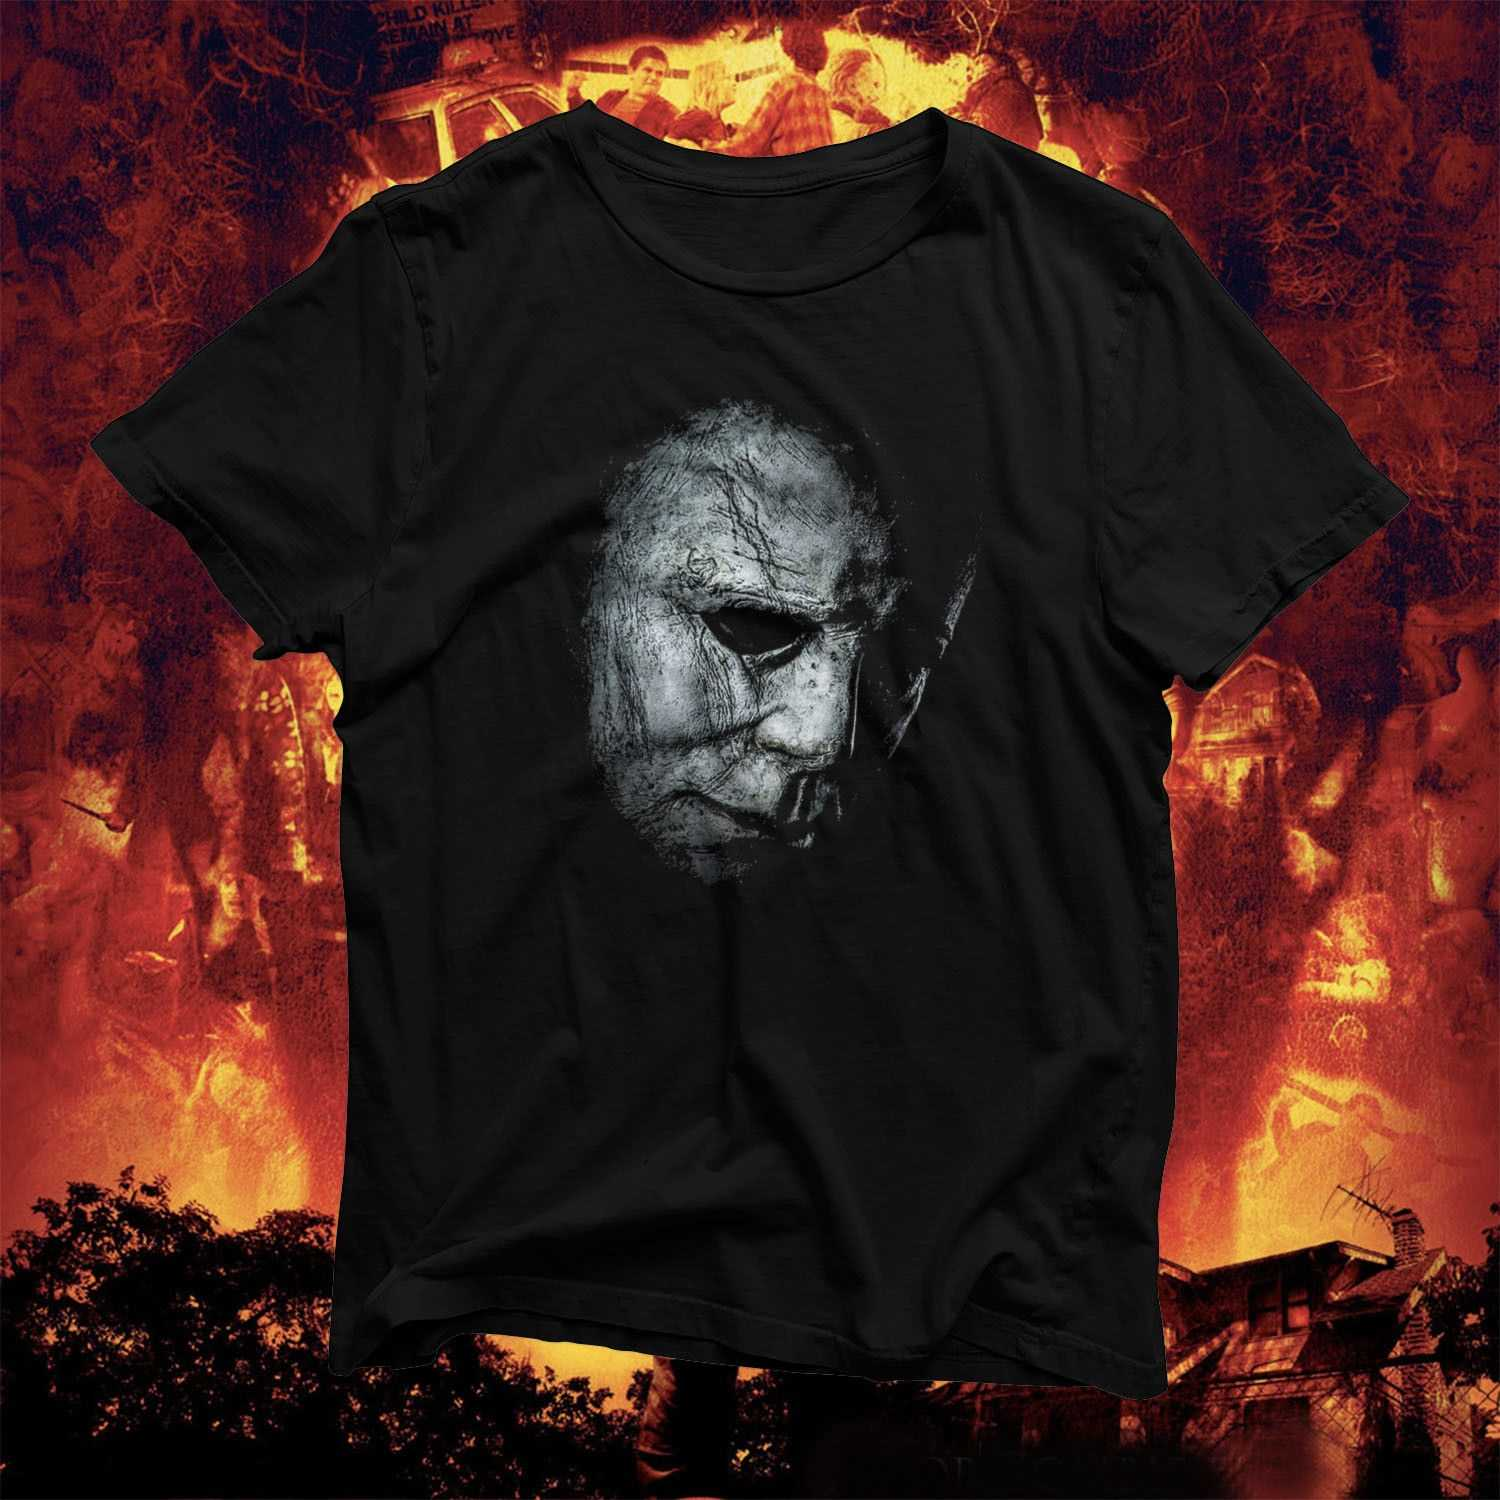 Halloween Mystery Slasher T Shirt Mike Michael Myers Creepy Spooky Blood Male Hip Hop Funny Tee Shirts Cheap Wholesale